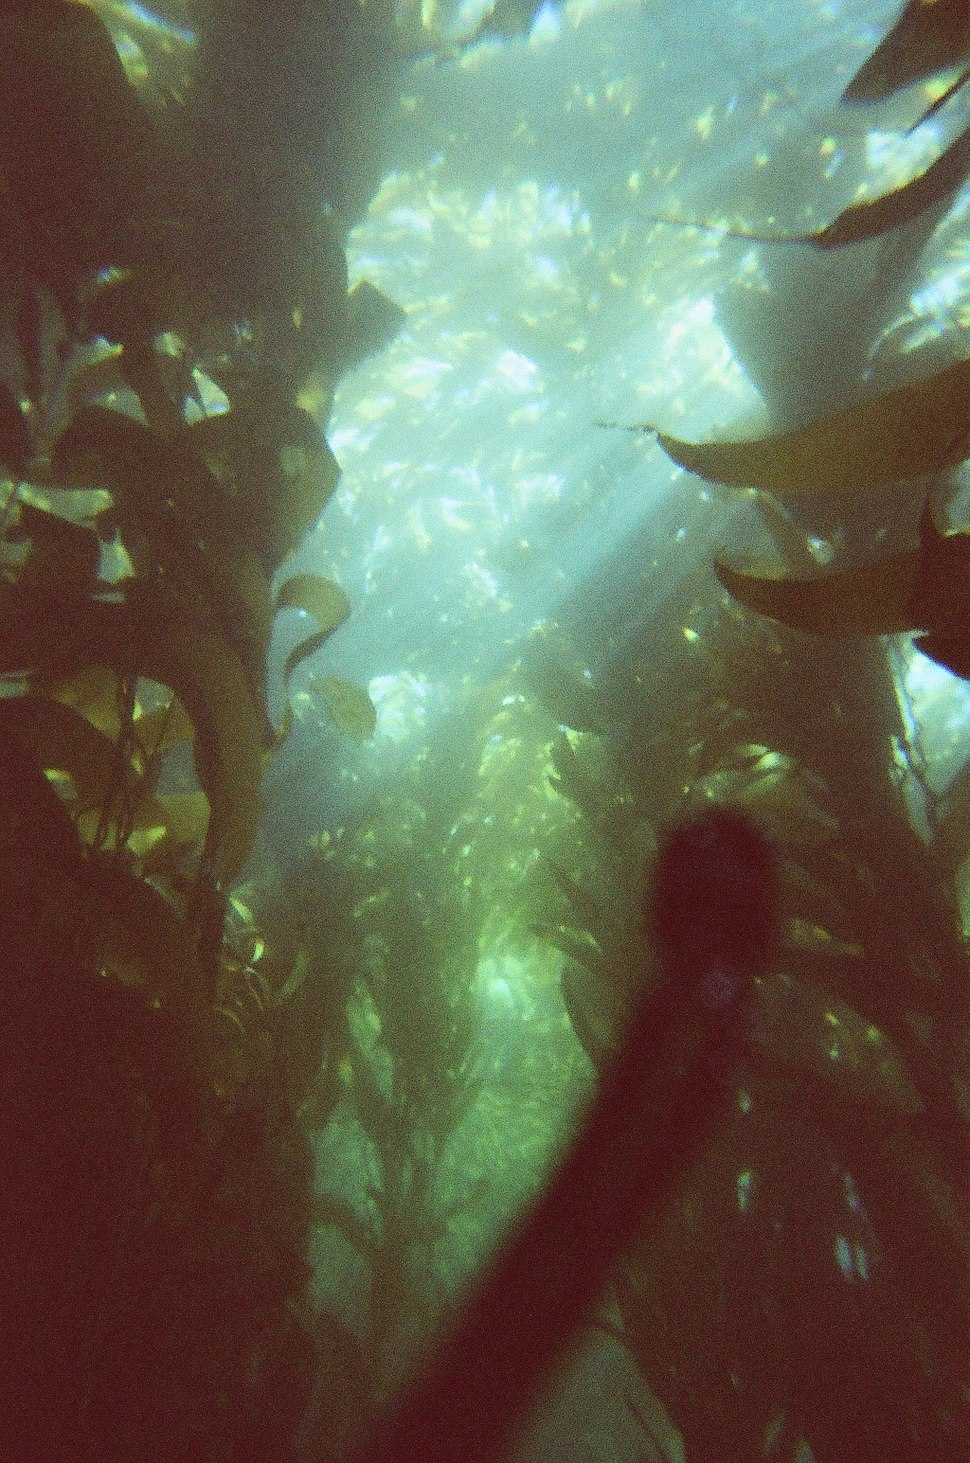 Kelp Forest off of Anacapa Island California